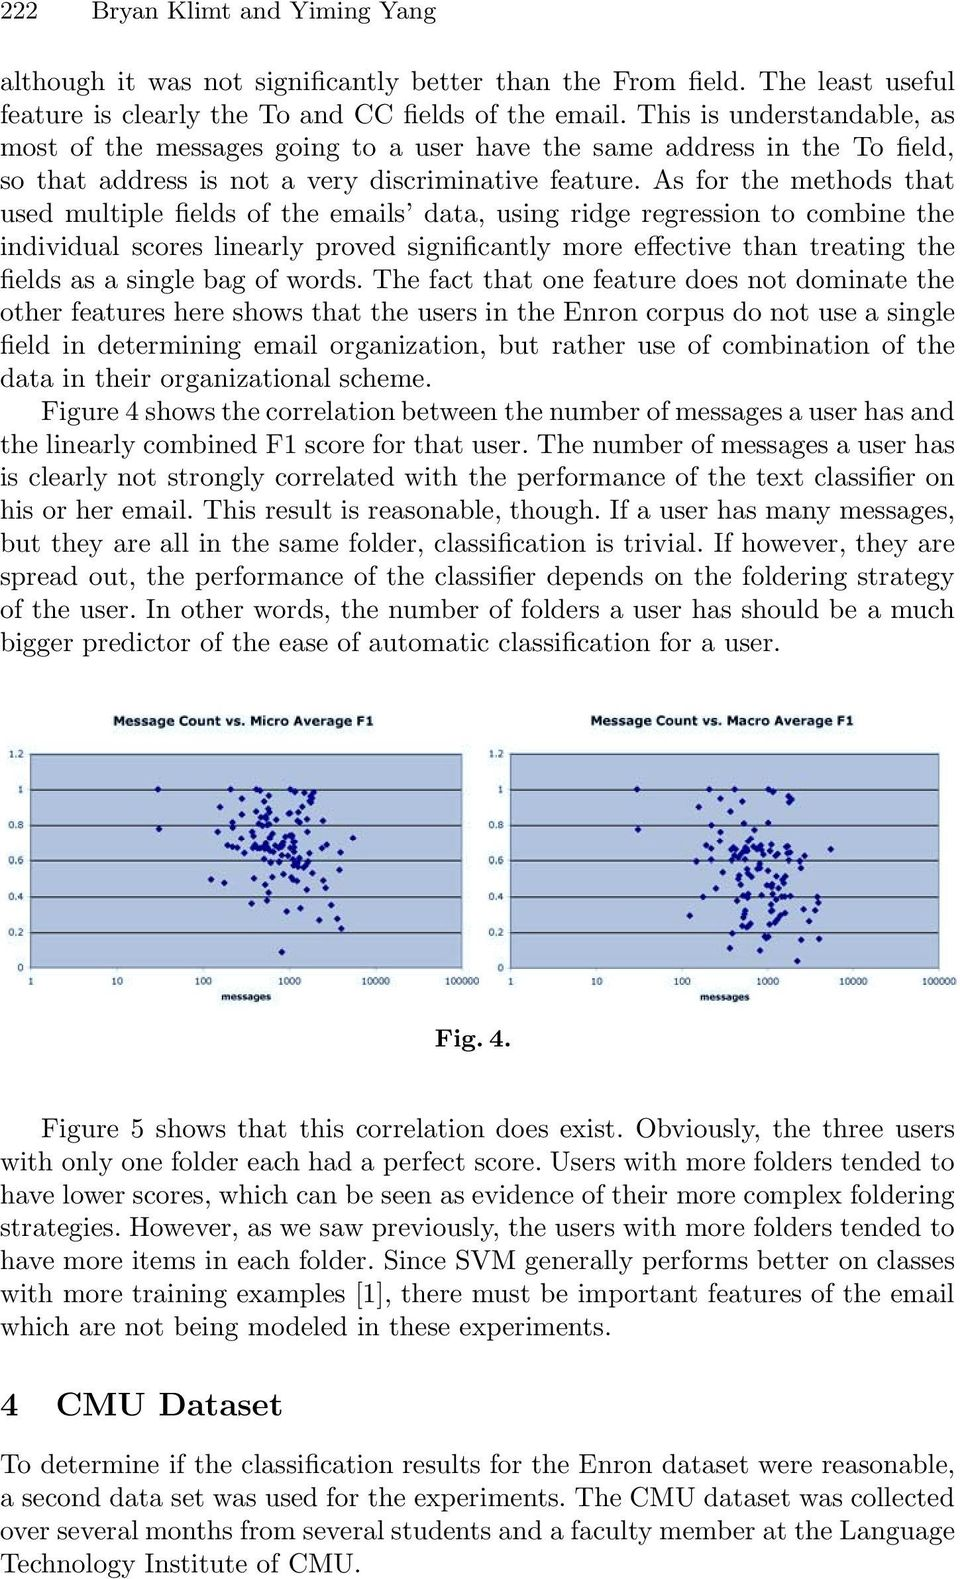 As for the methods that used multiple fields of the emails data, using ridge regression to combine the individual scores linearly proved significantly more effective than treating the fields as a